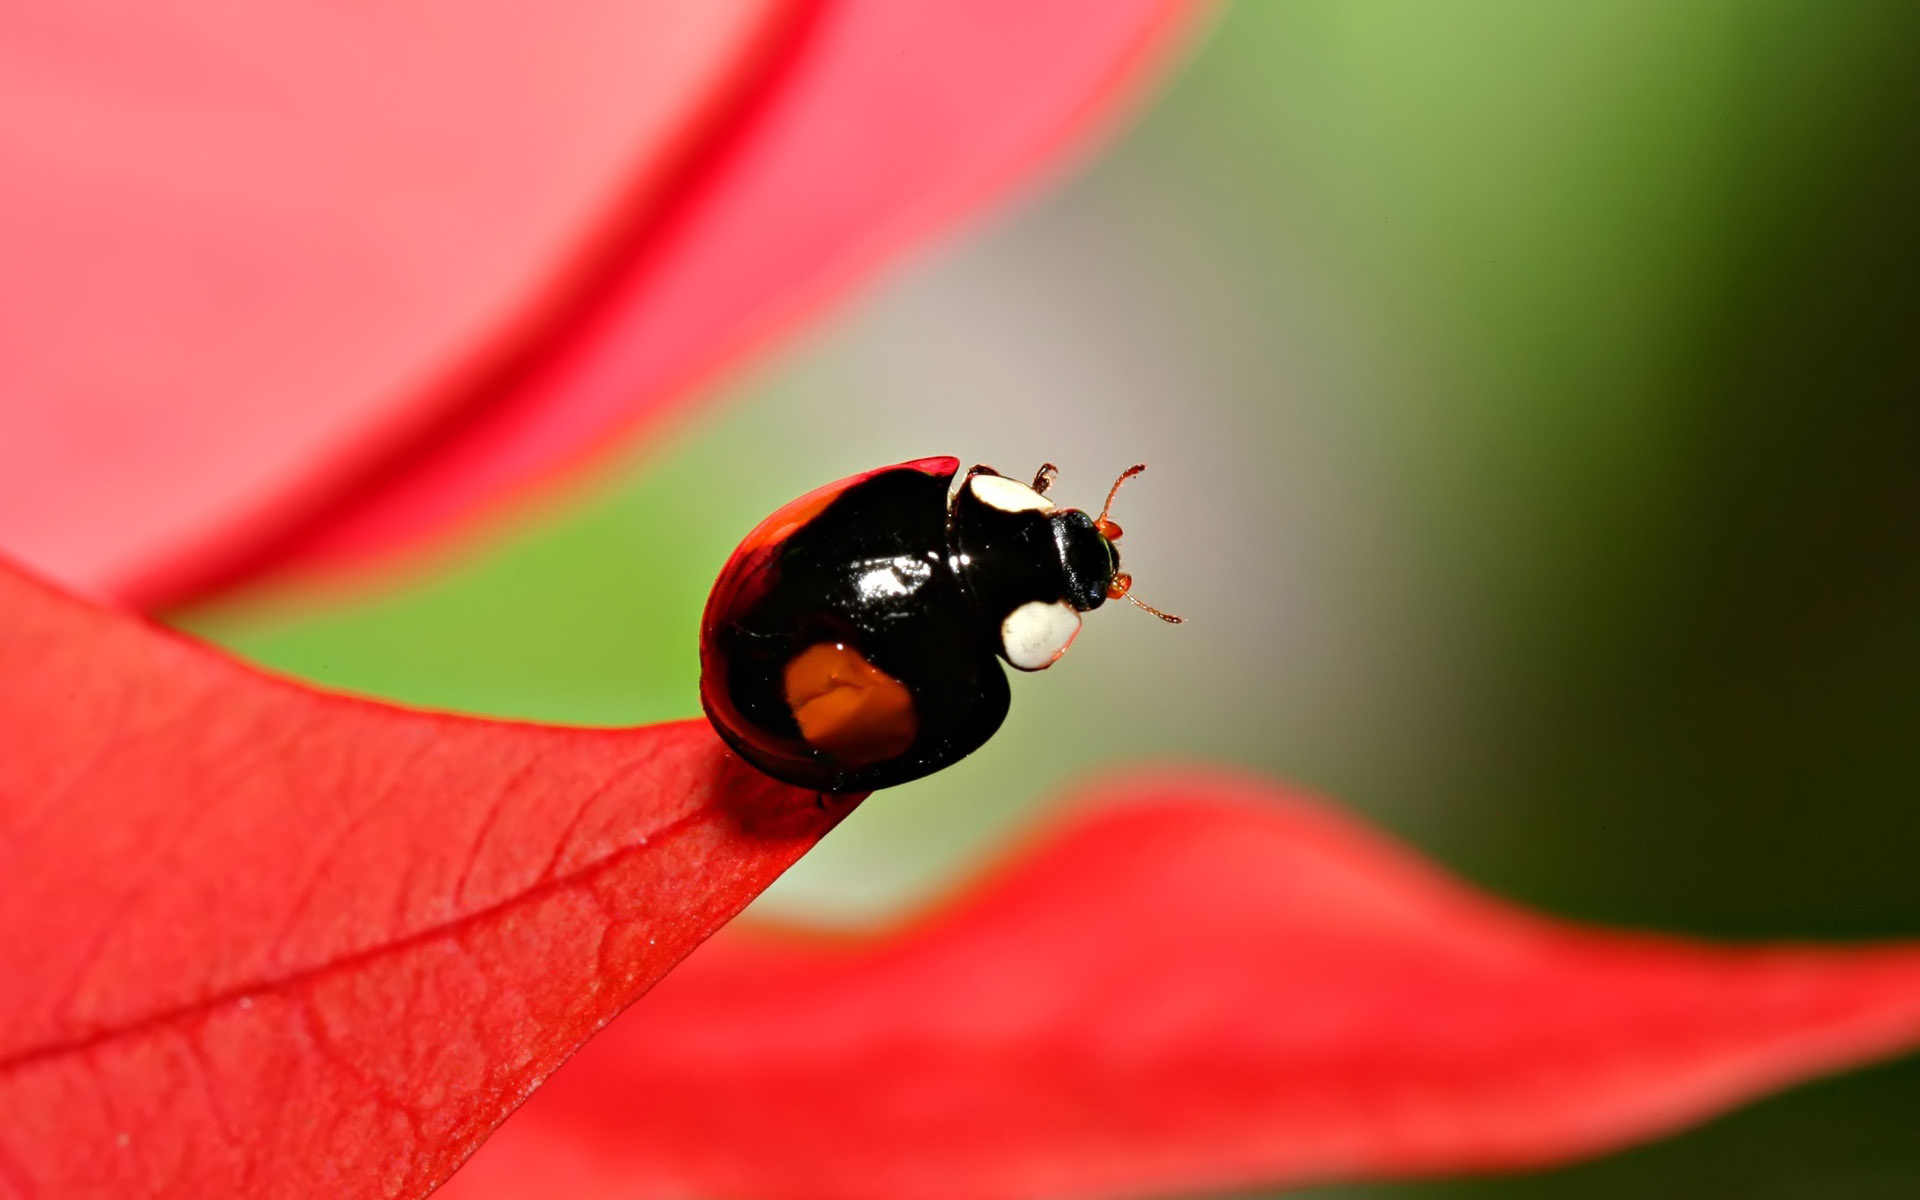 40953 download wallpaper Insects, Ladybugs screensavers and pictures for free